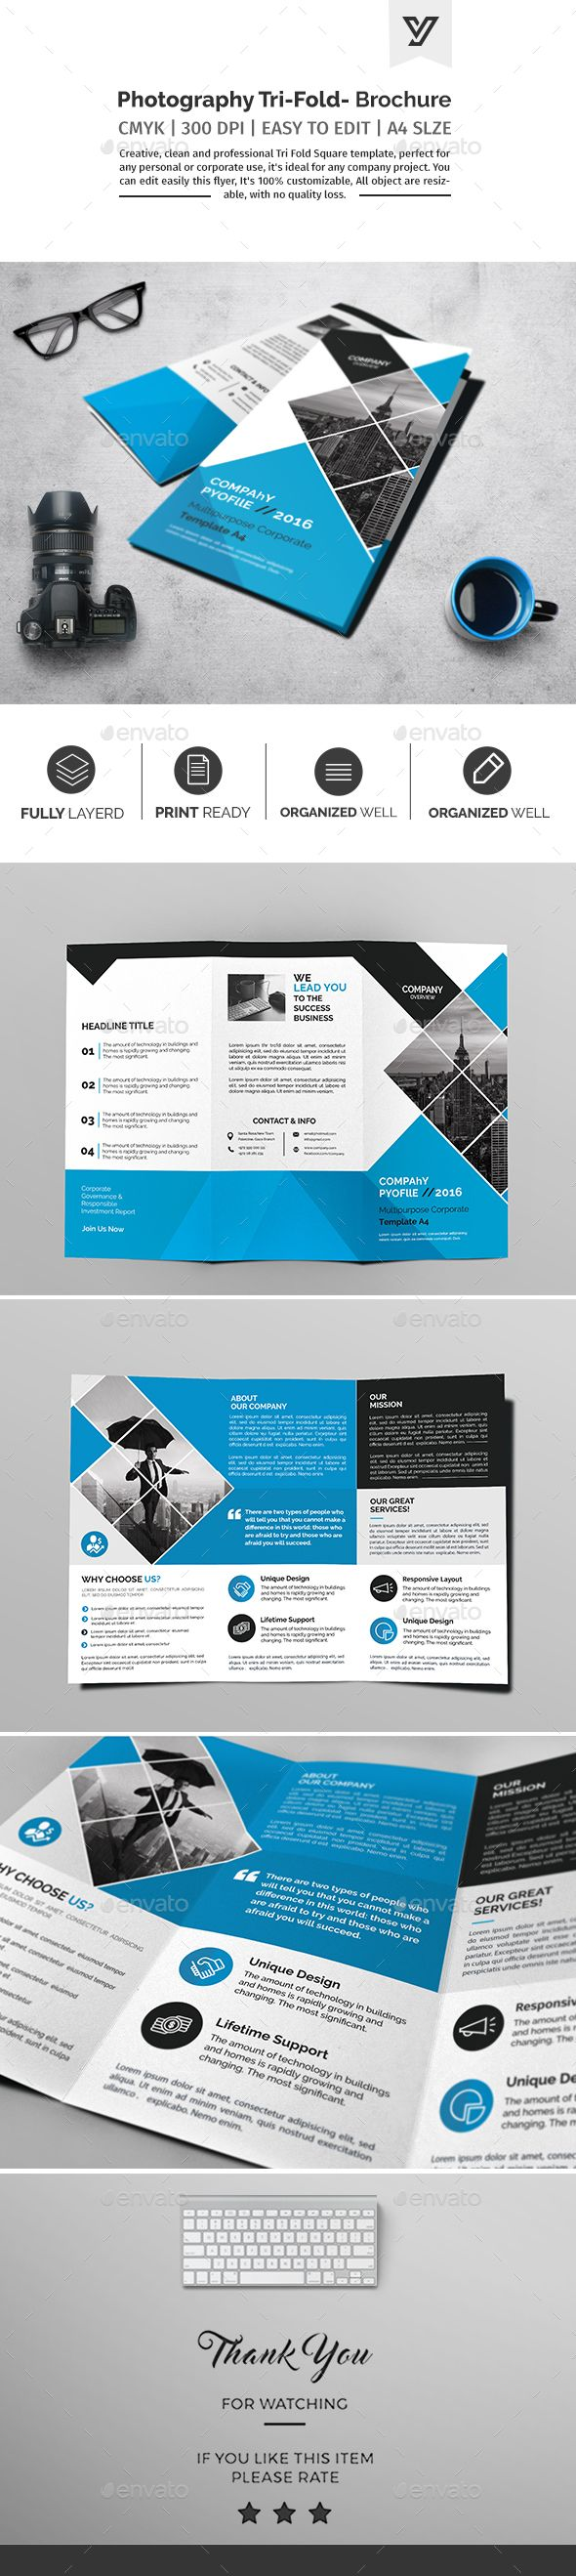 Corporate Tri-fold Brochure Template PSD. Download here: https://graphicriver.net/item/corporate-trifold-brochure-template-03/17381361?ref=ksioks